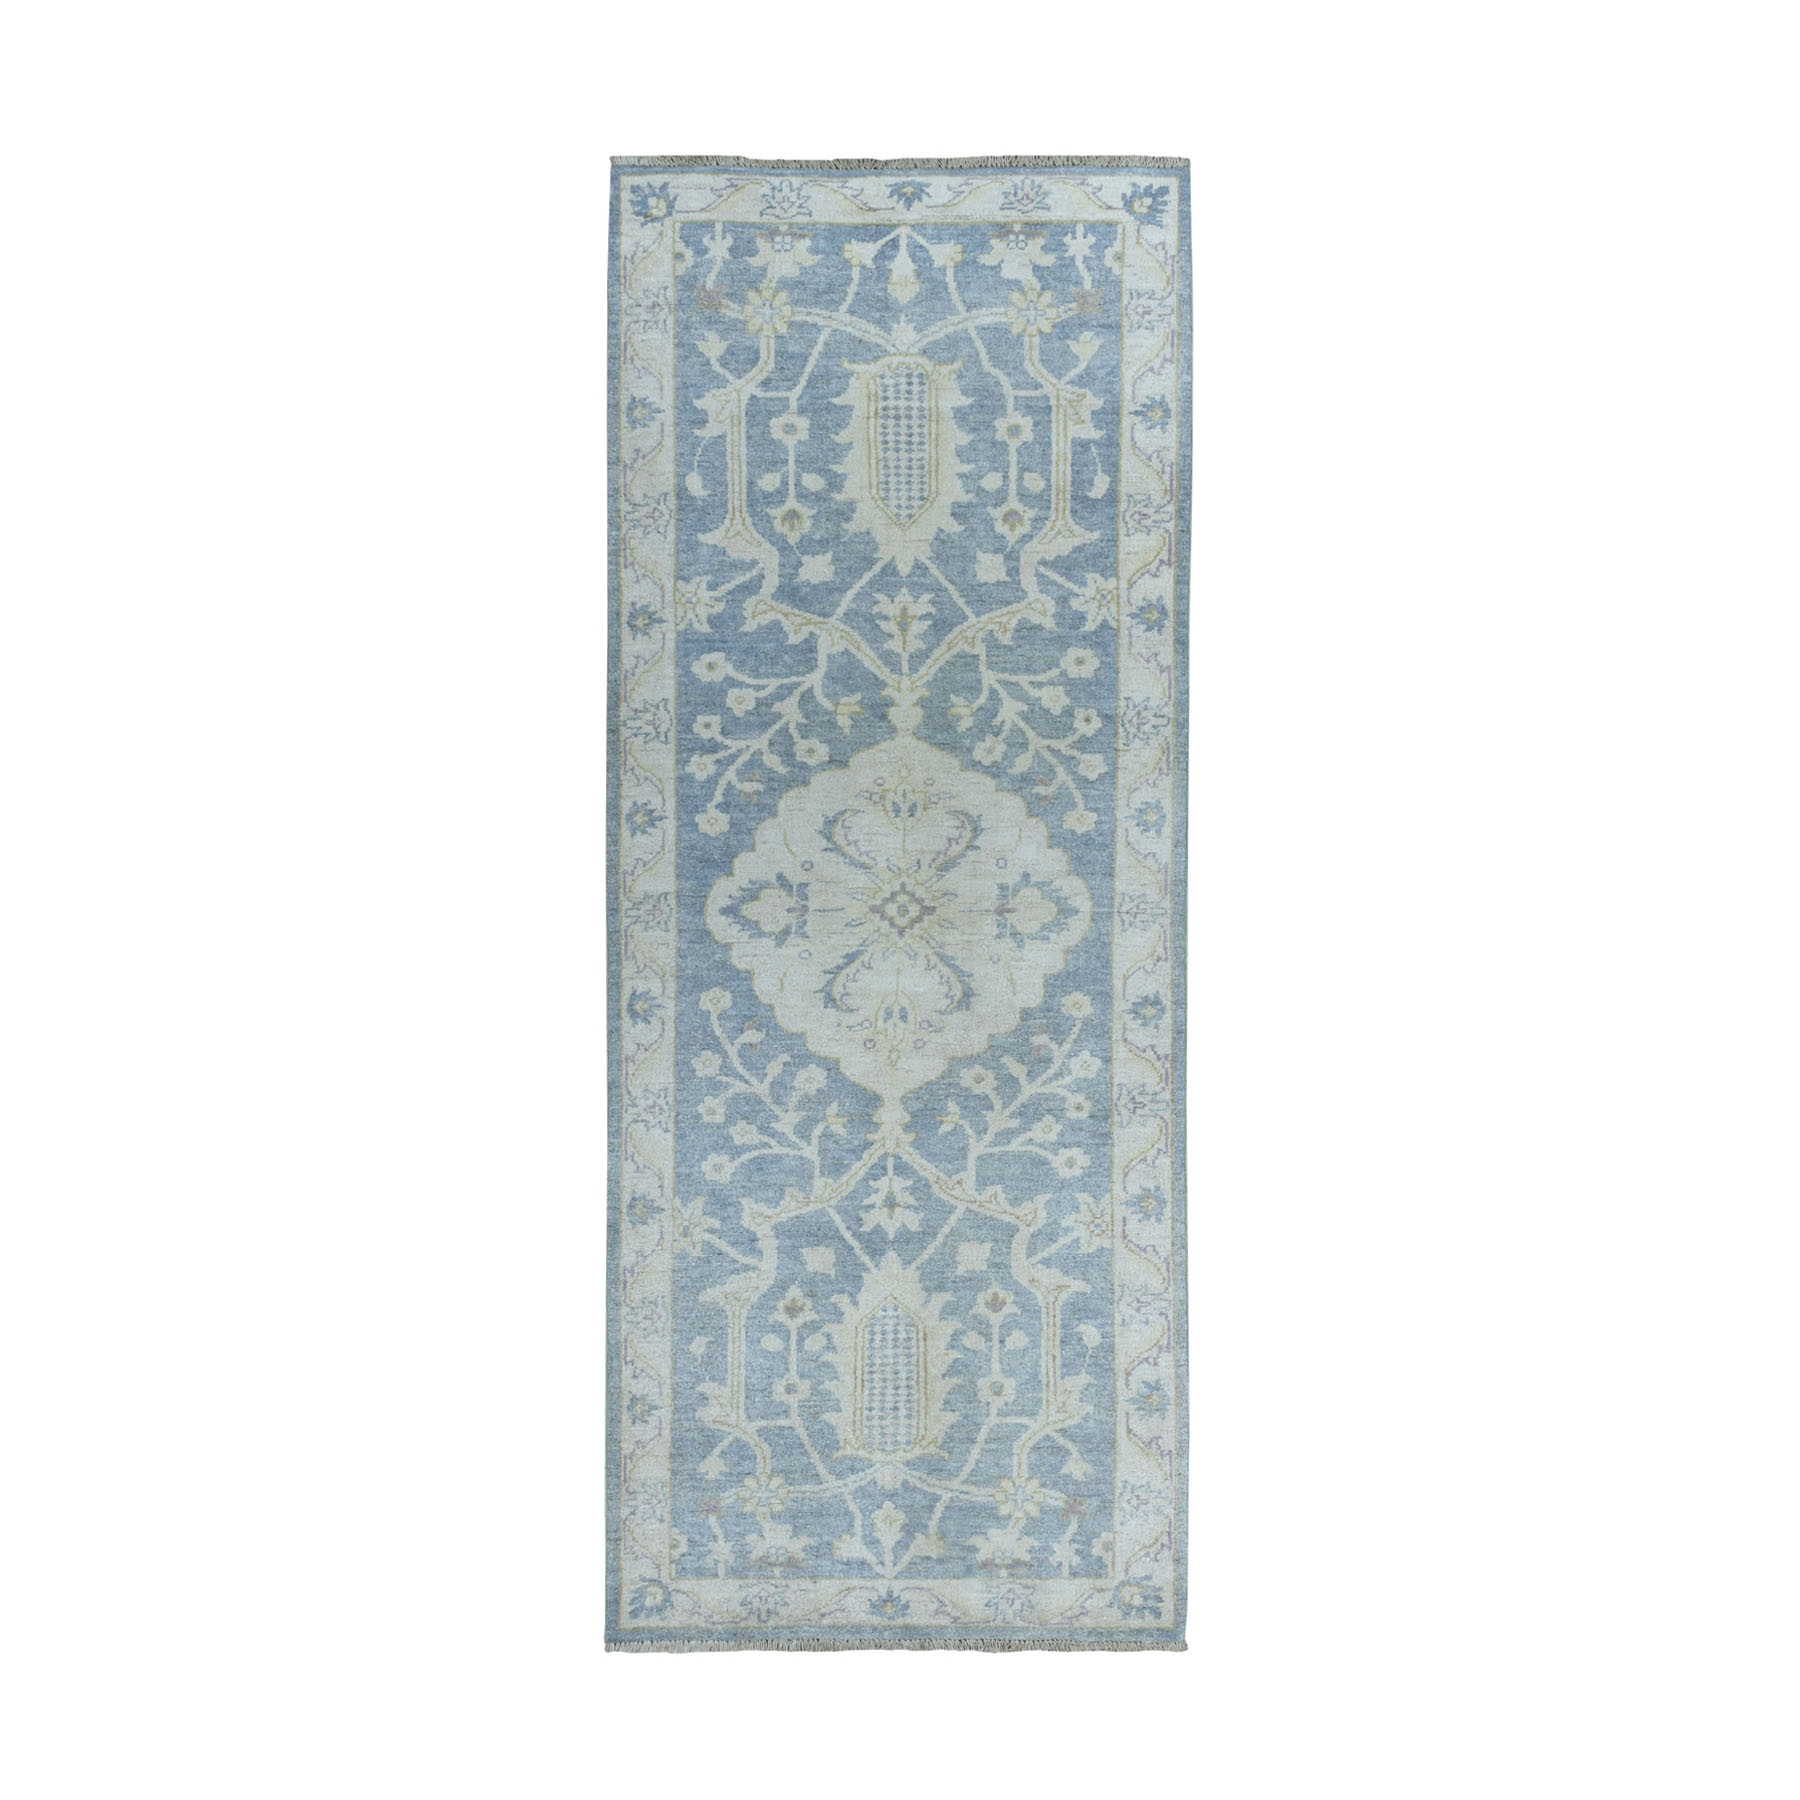 """2'7""""X6'8"""" White Wash Peshawar Pure Wool Hand-Knotted Runner Oriental Rug moaeacd6"""